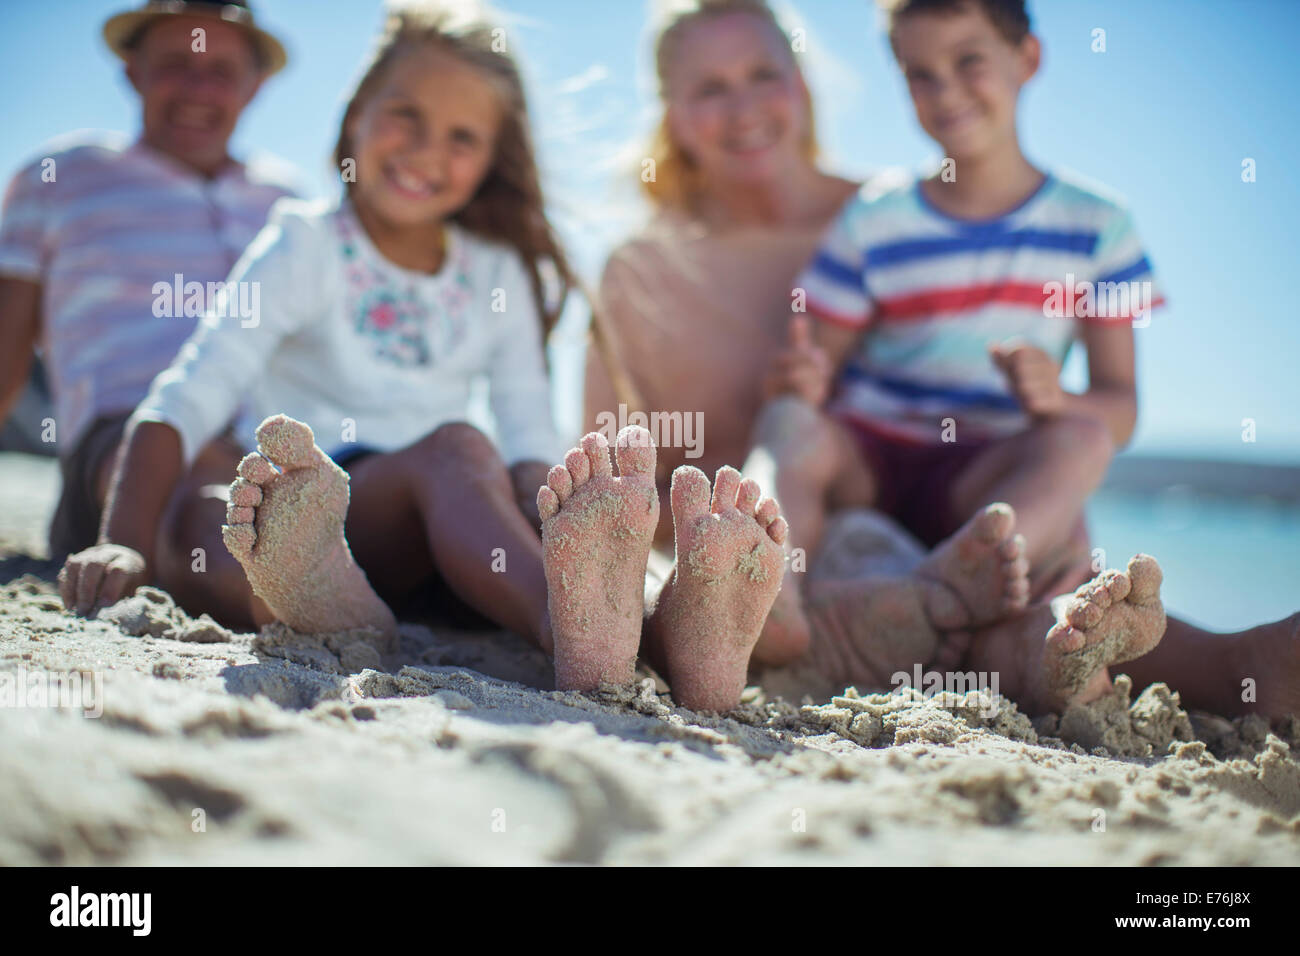 Family sitting together with feet in sand - Stock Image